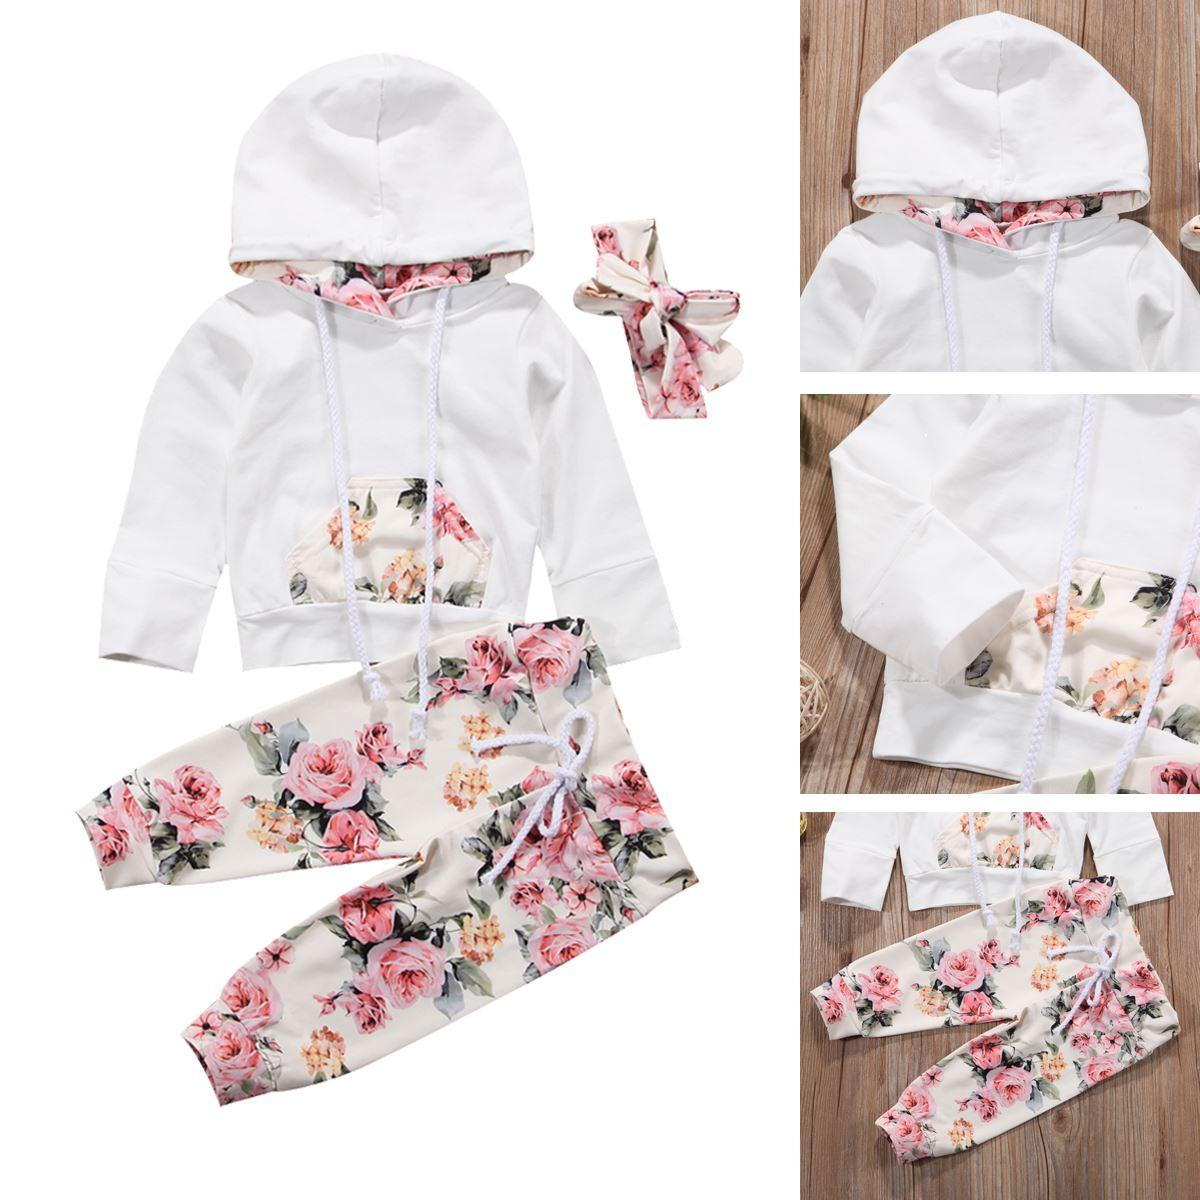 Newborn Baby Girl Clothes Headband Tops Pants Autumn Outfits Sets Tracksuit UK